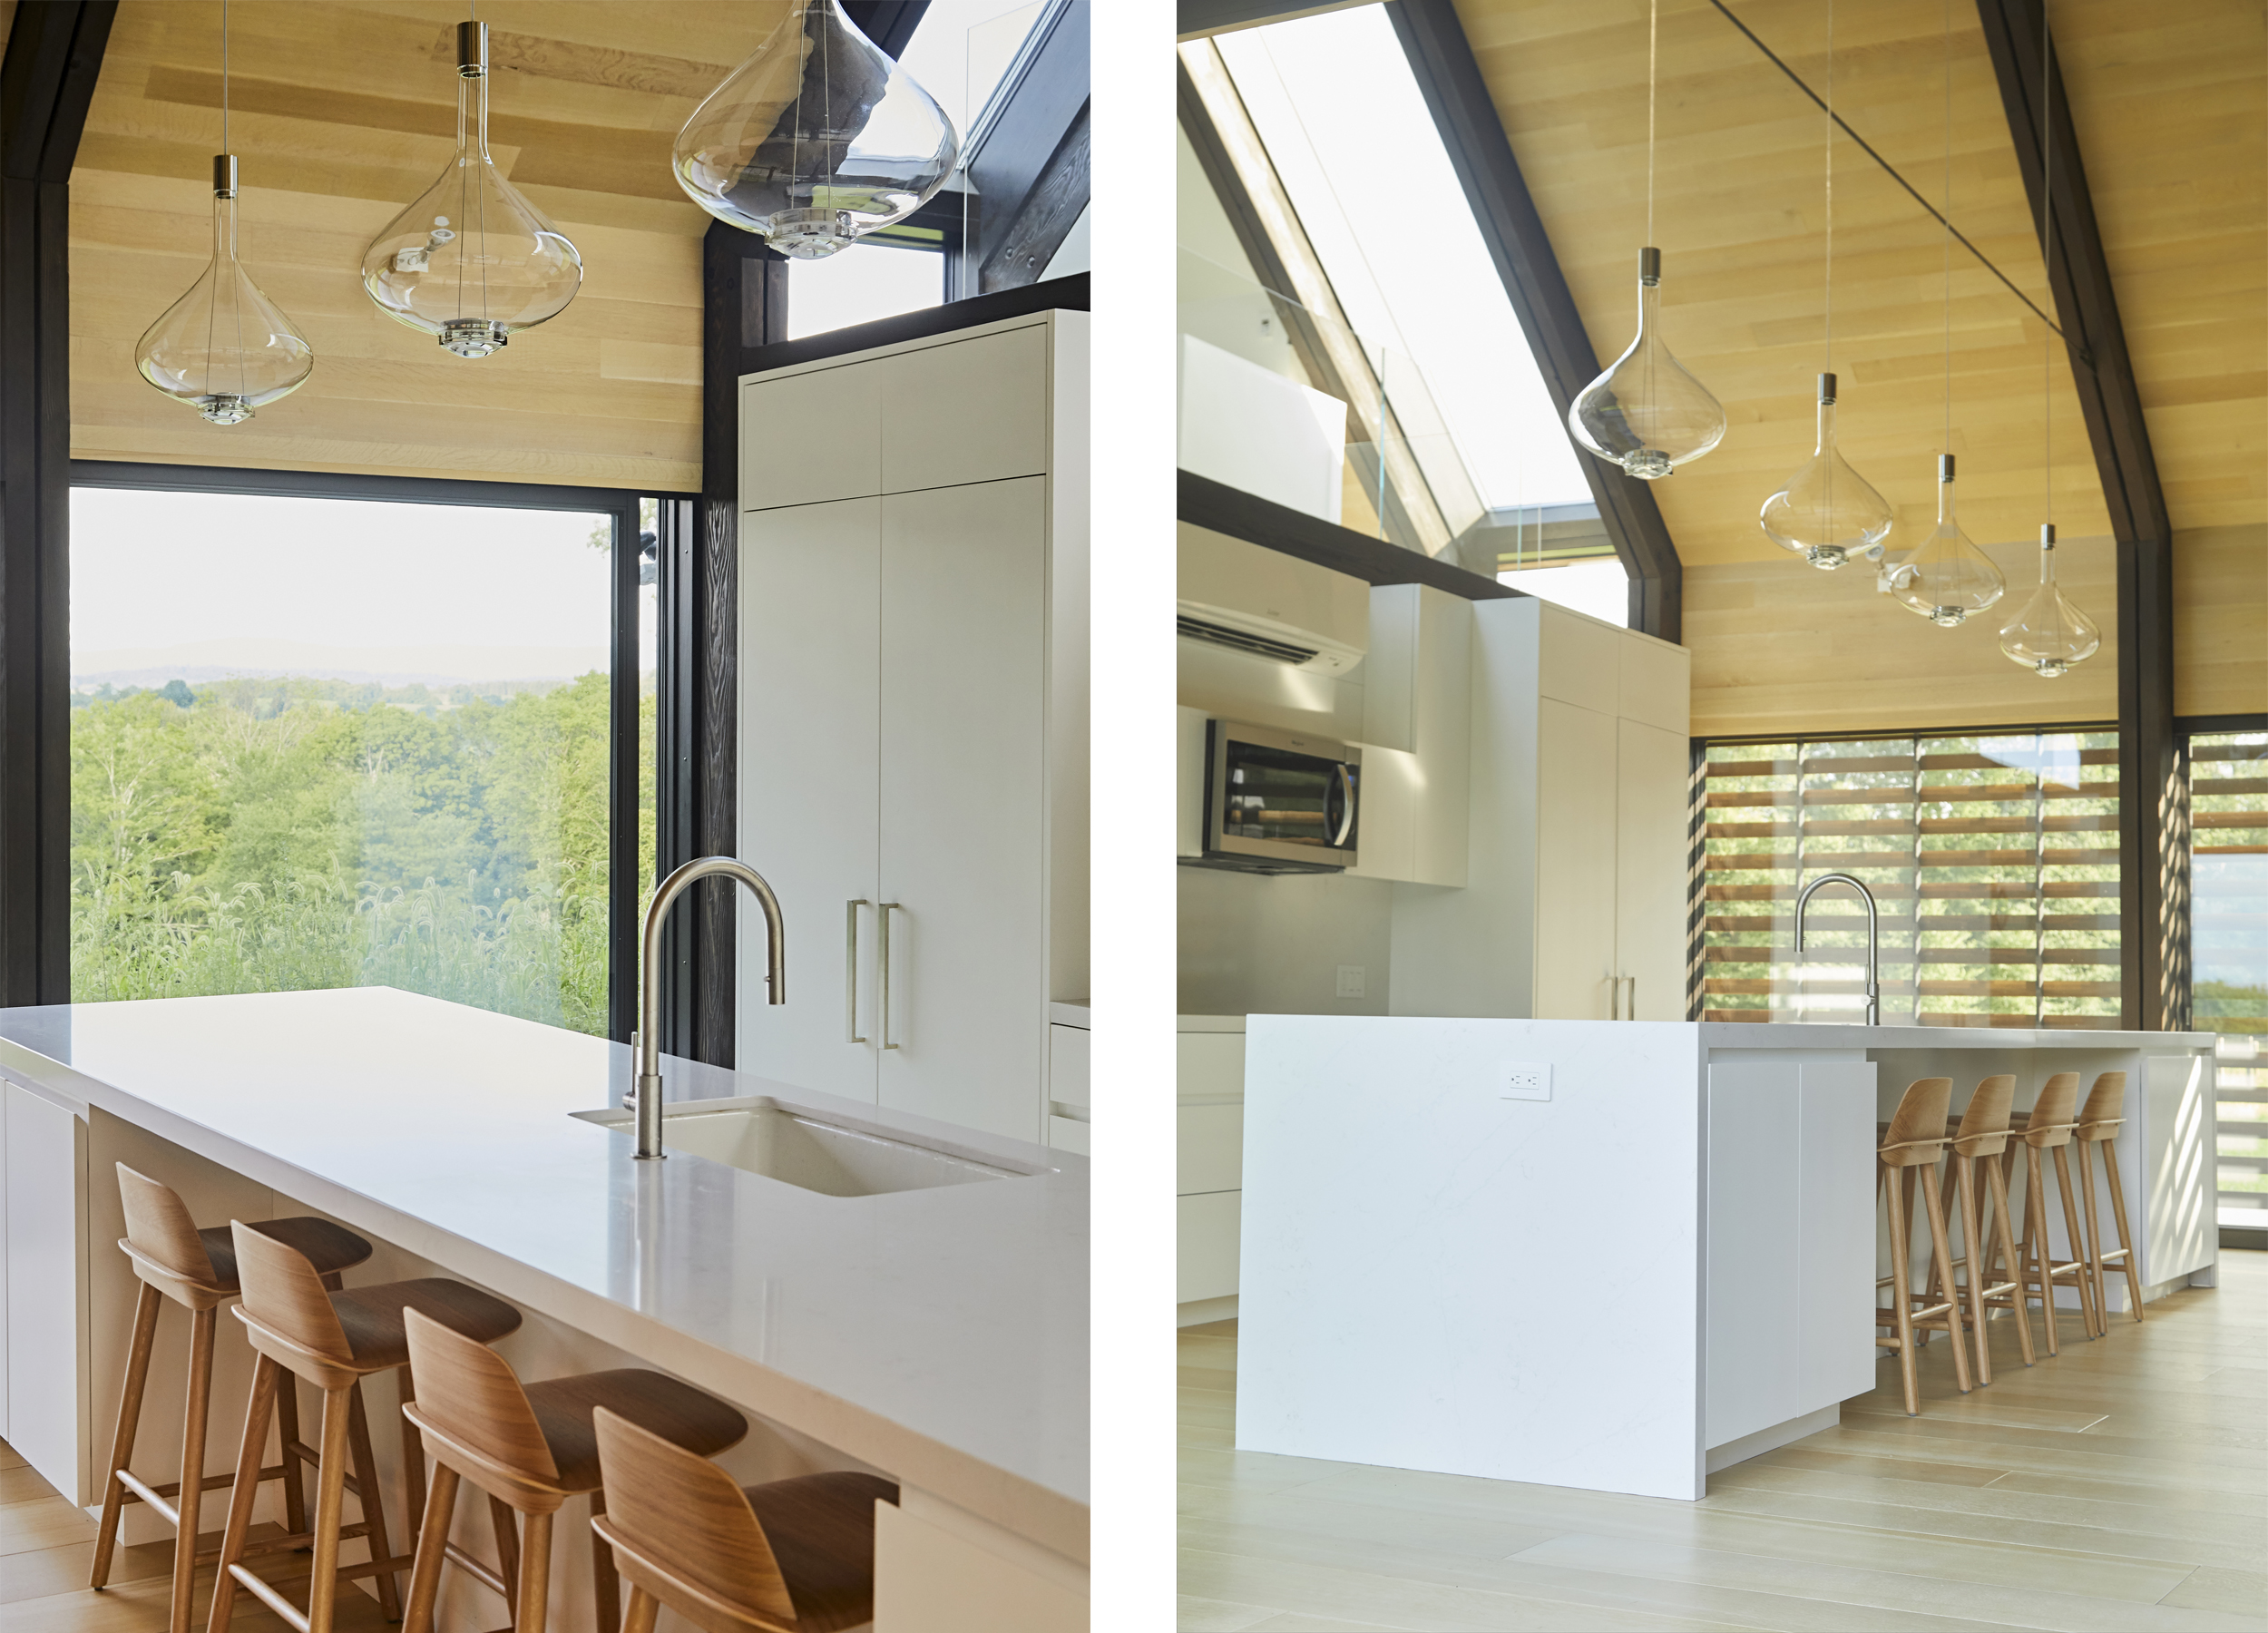 The kitchen's focal point is a 16ft long floating island counter with waterfall which acts as a breakfast bar, storage and